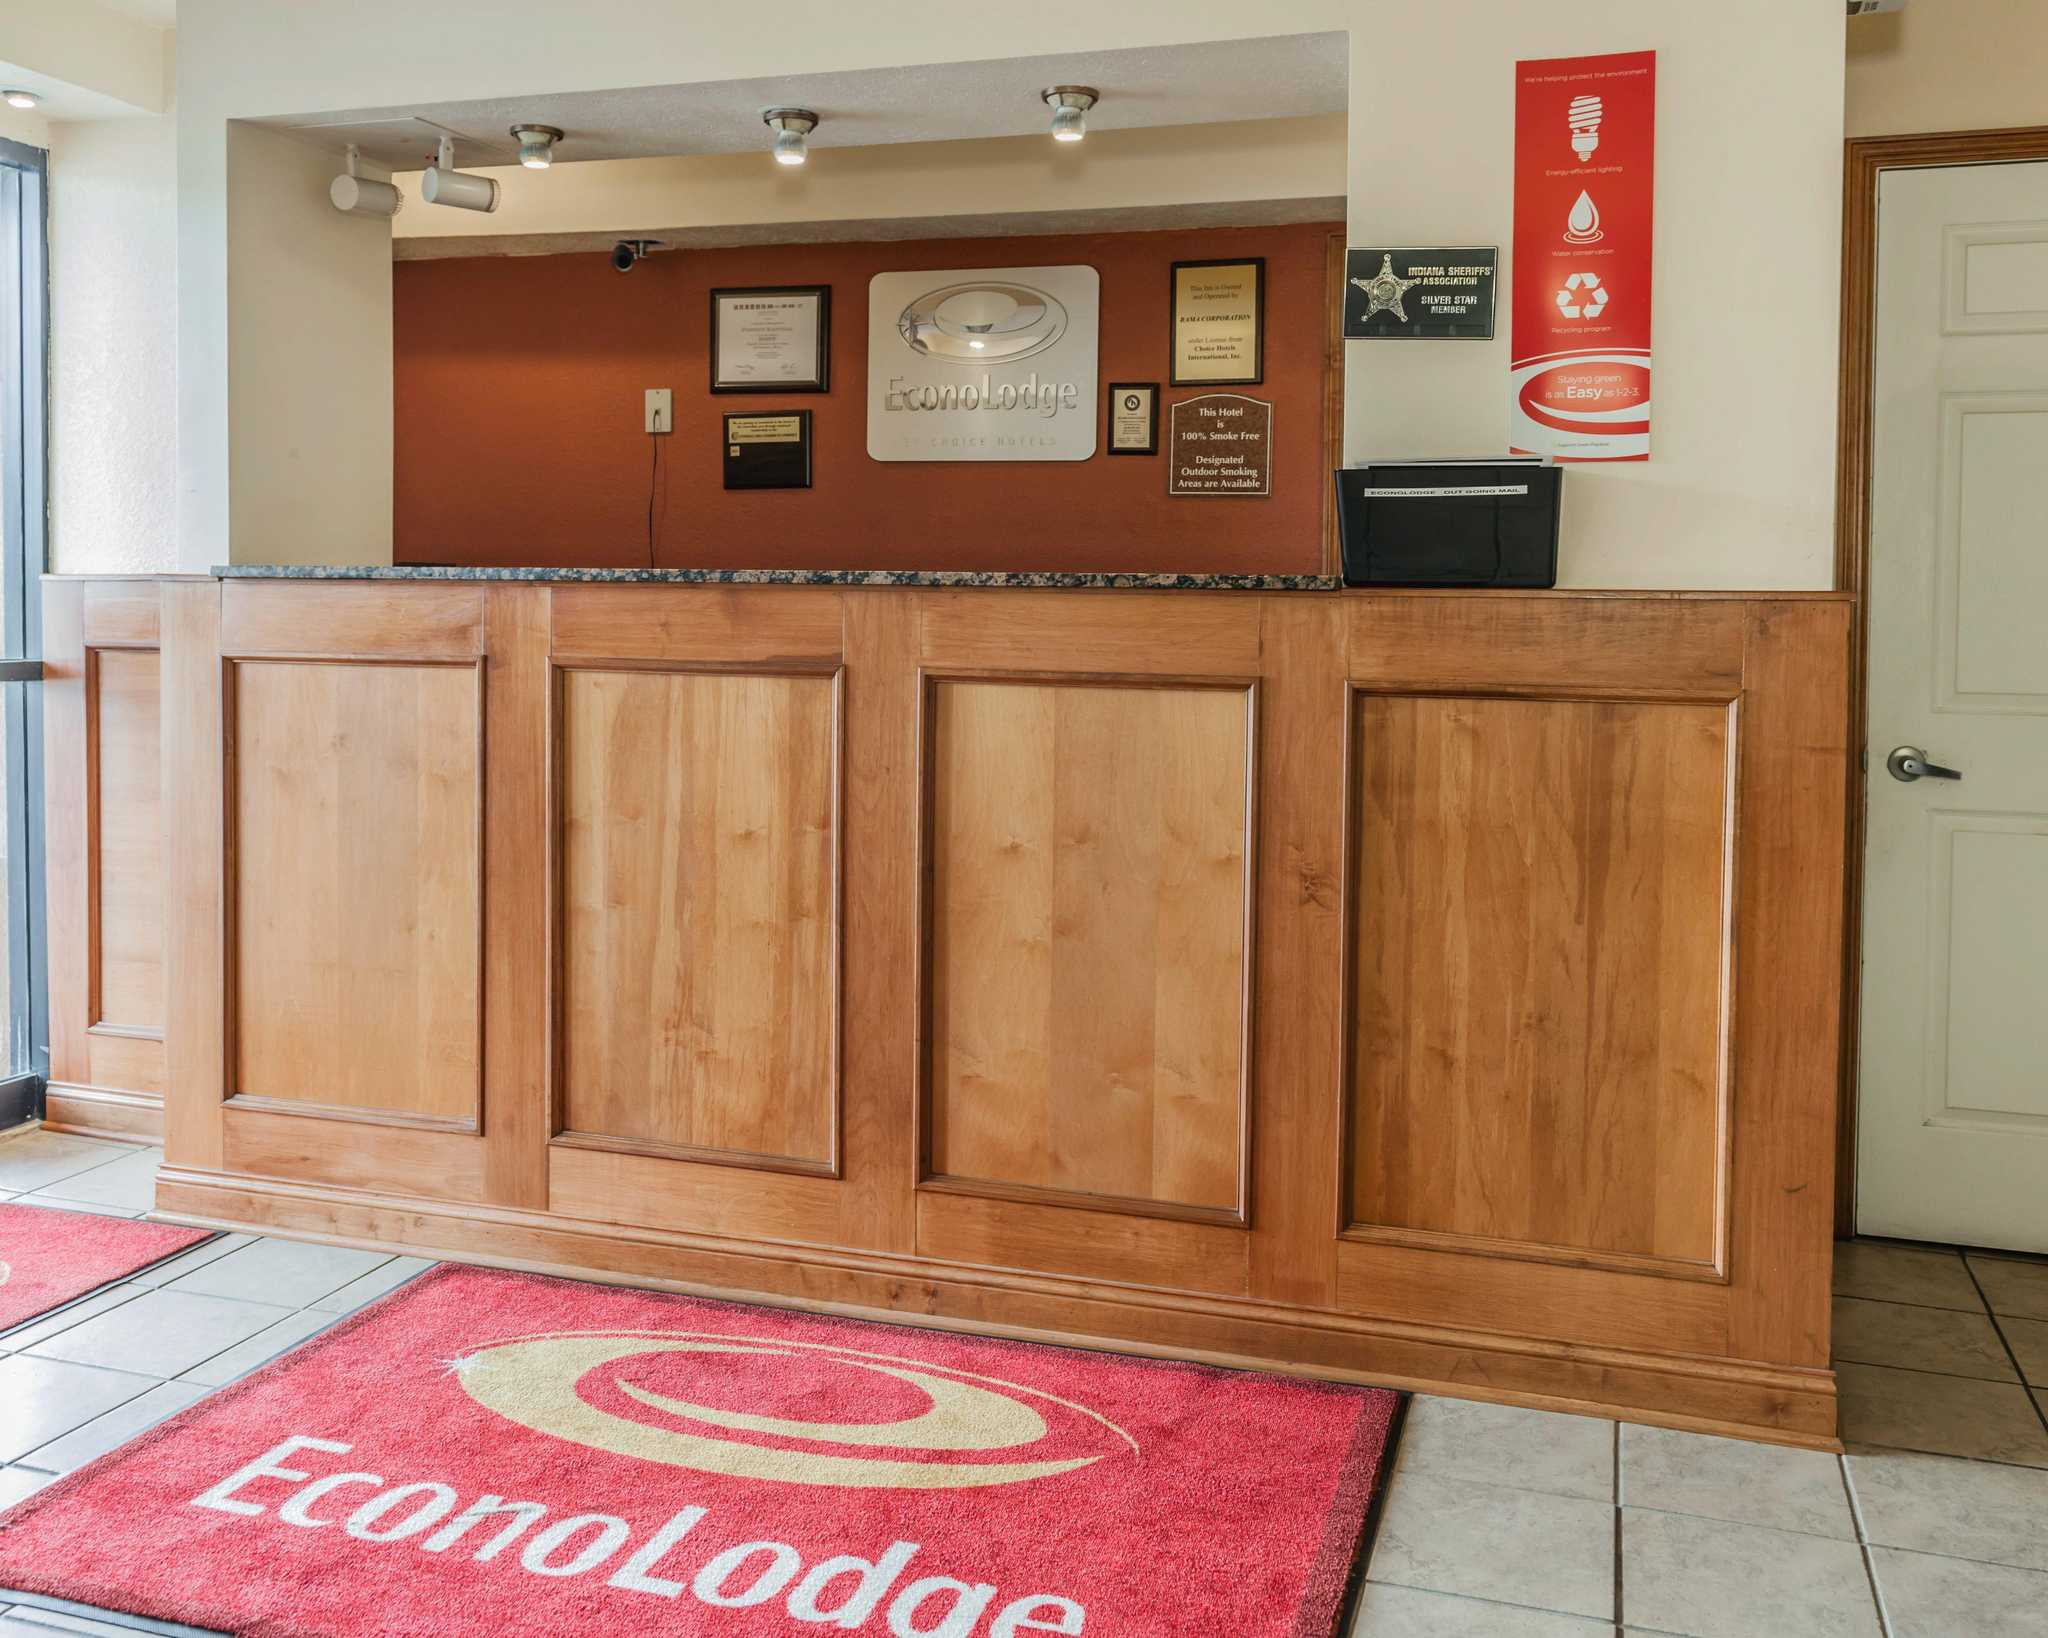 Econo Lodge image 16